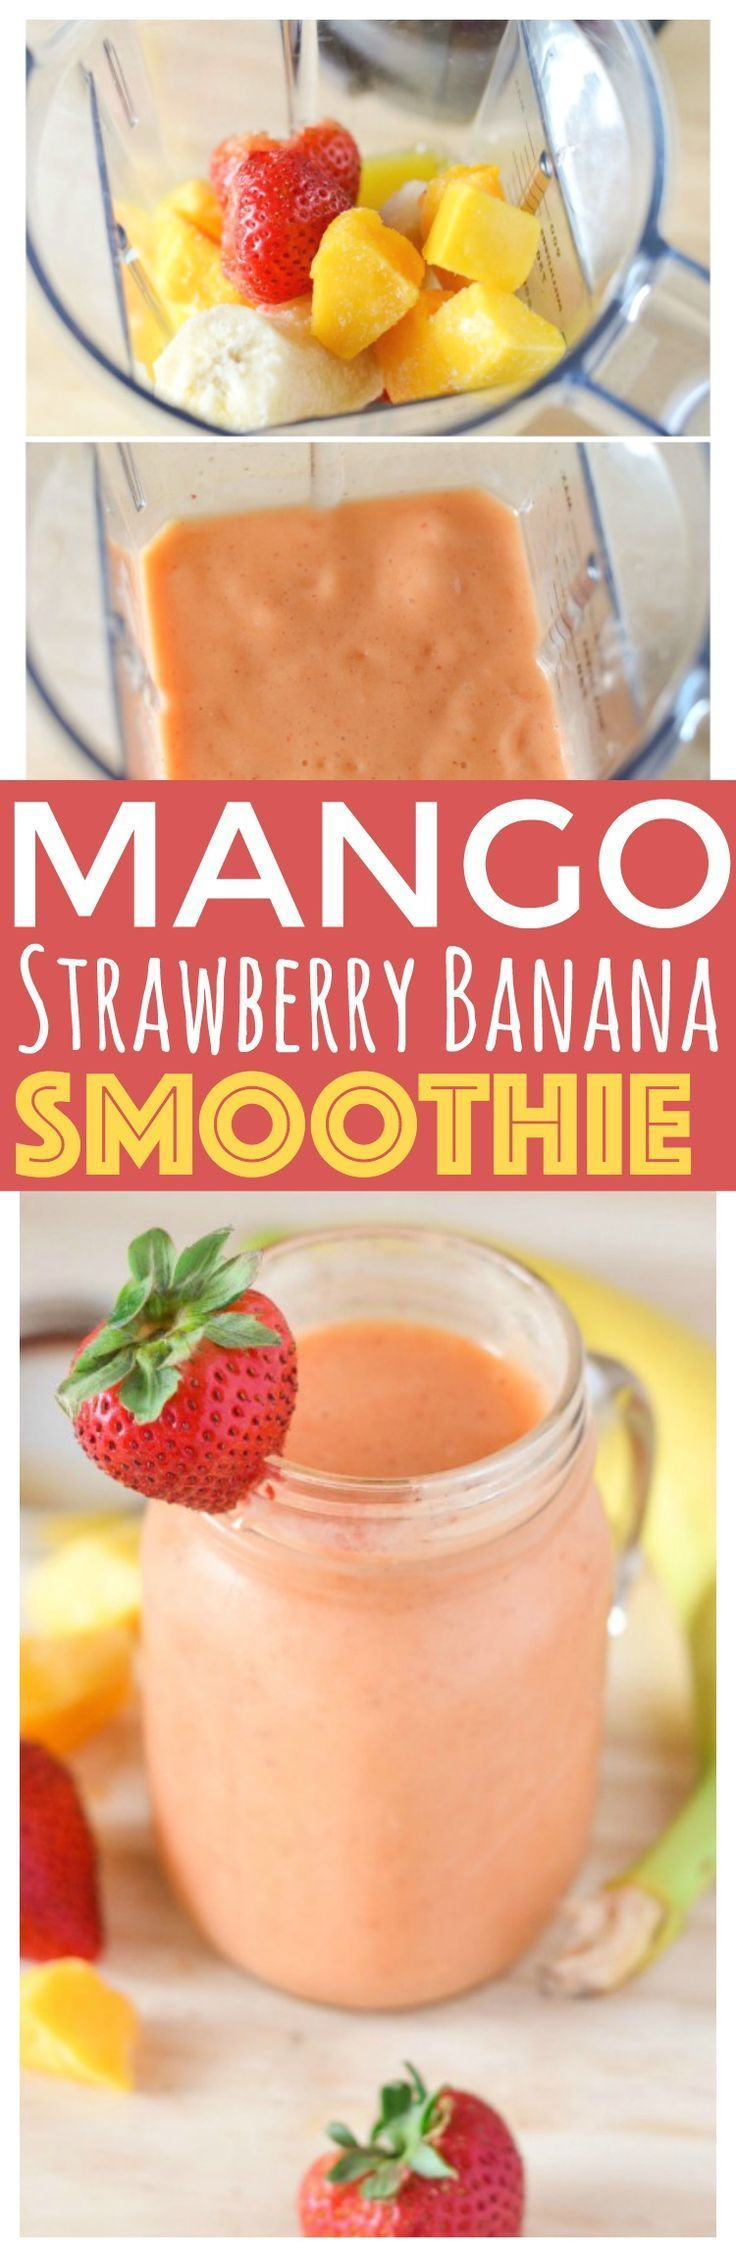 Quick and easy lunch, Mango Strawberry Banana Smoothie you can have a tasty and fulfilling lunch in less than 5 minutes serve healthy salad. via @CourtneysSweets (healthy shakes and smoothies)